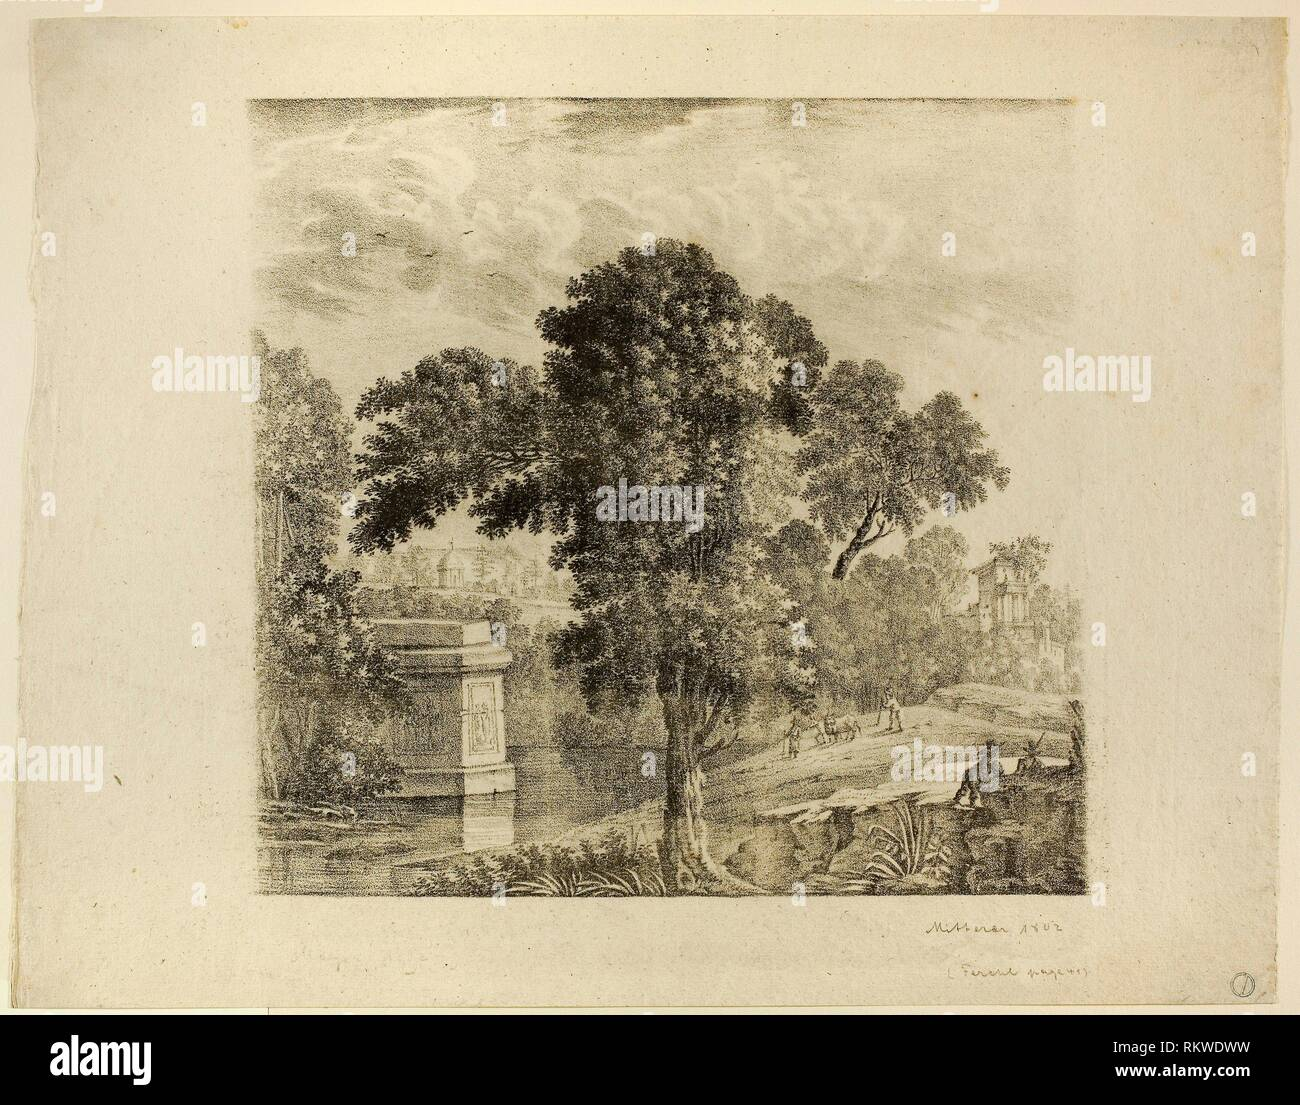 Landscape with Tree - 1802 - Mitterer (Unknown, 19th century) Style of Claude Lorrain (French, 1600-1682) - Artist: Mitterer, Origin: France, Date: - Stock Image